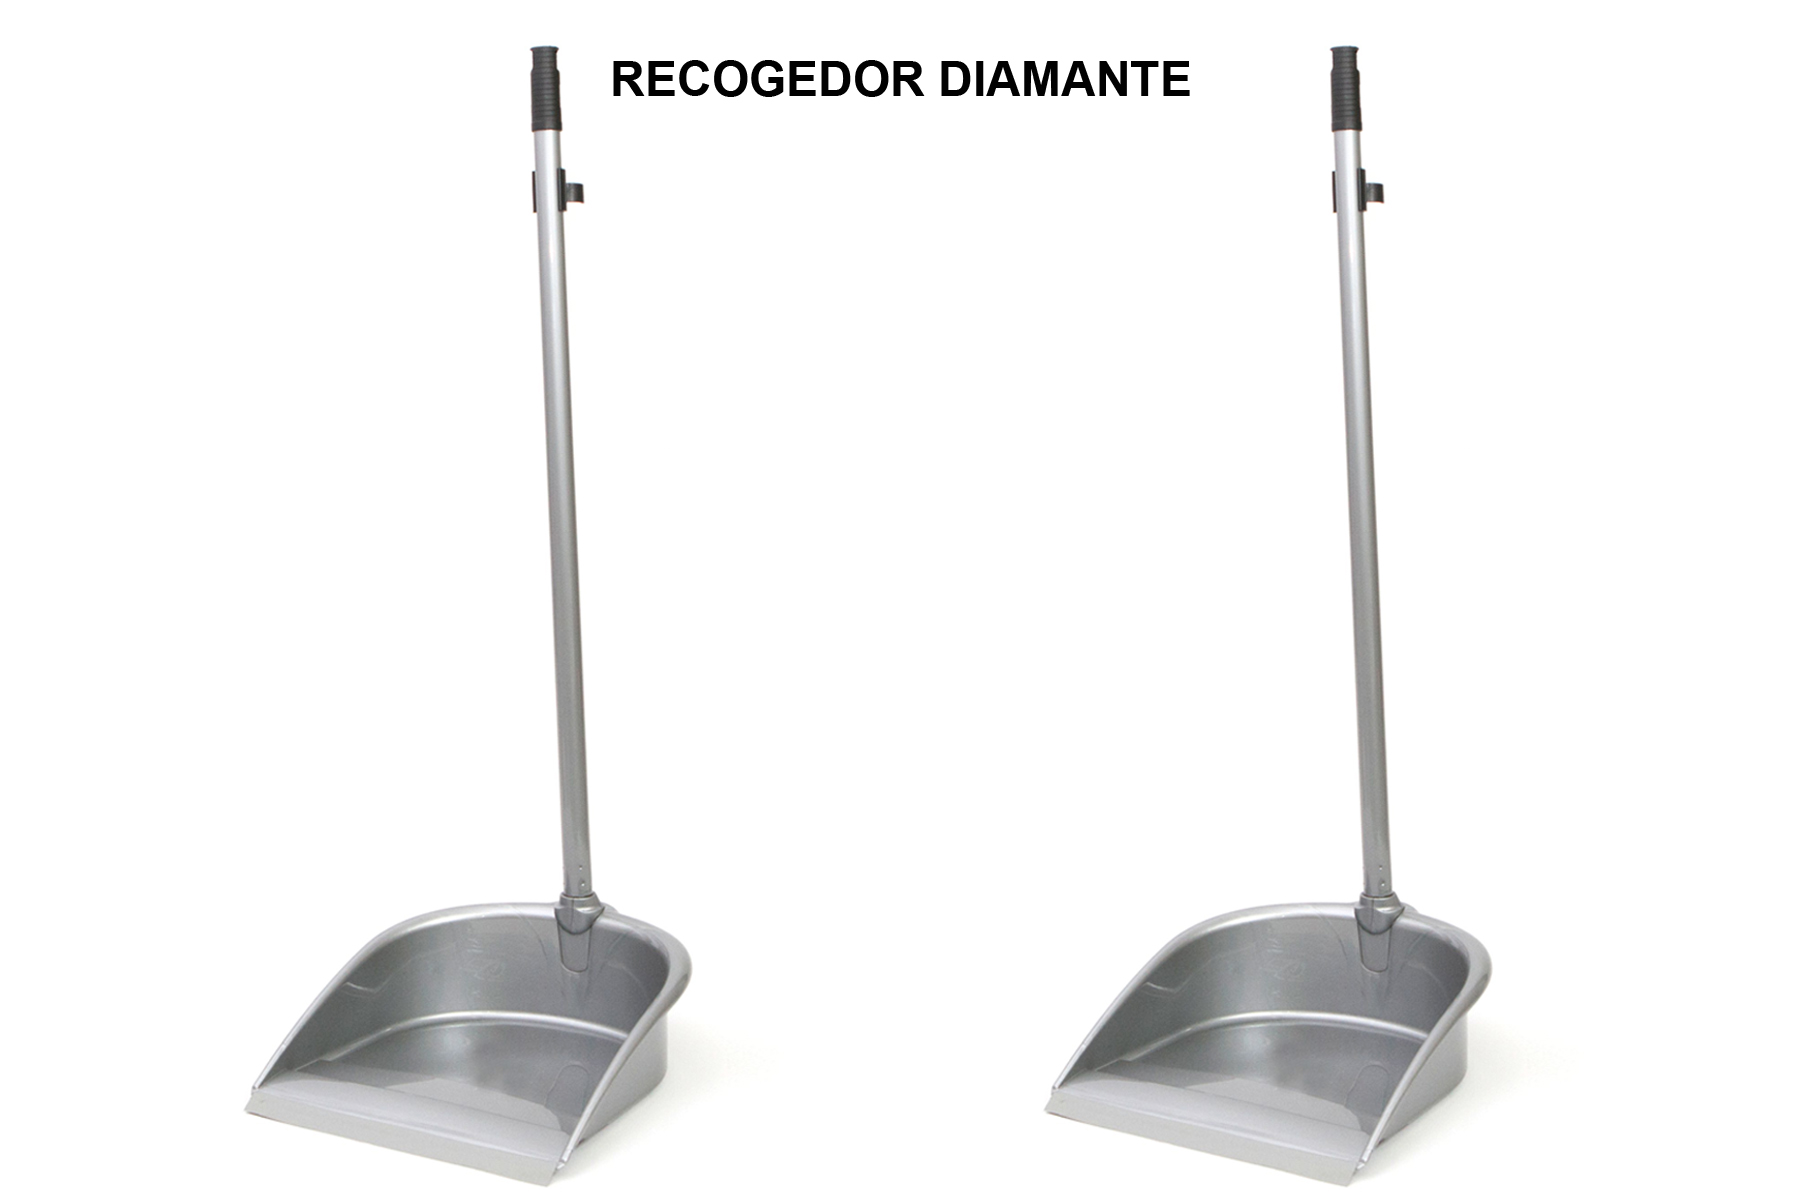 RECOGEDOR DIAMANTE